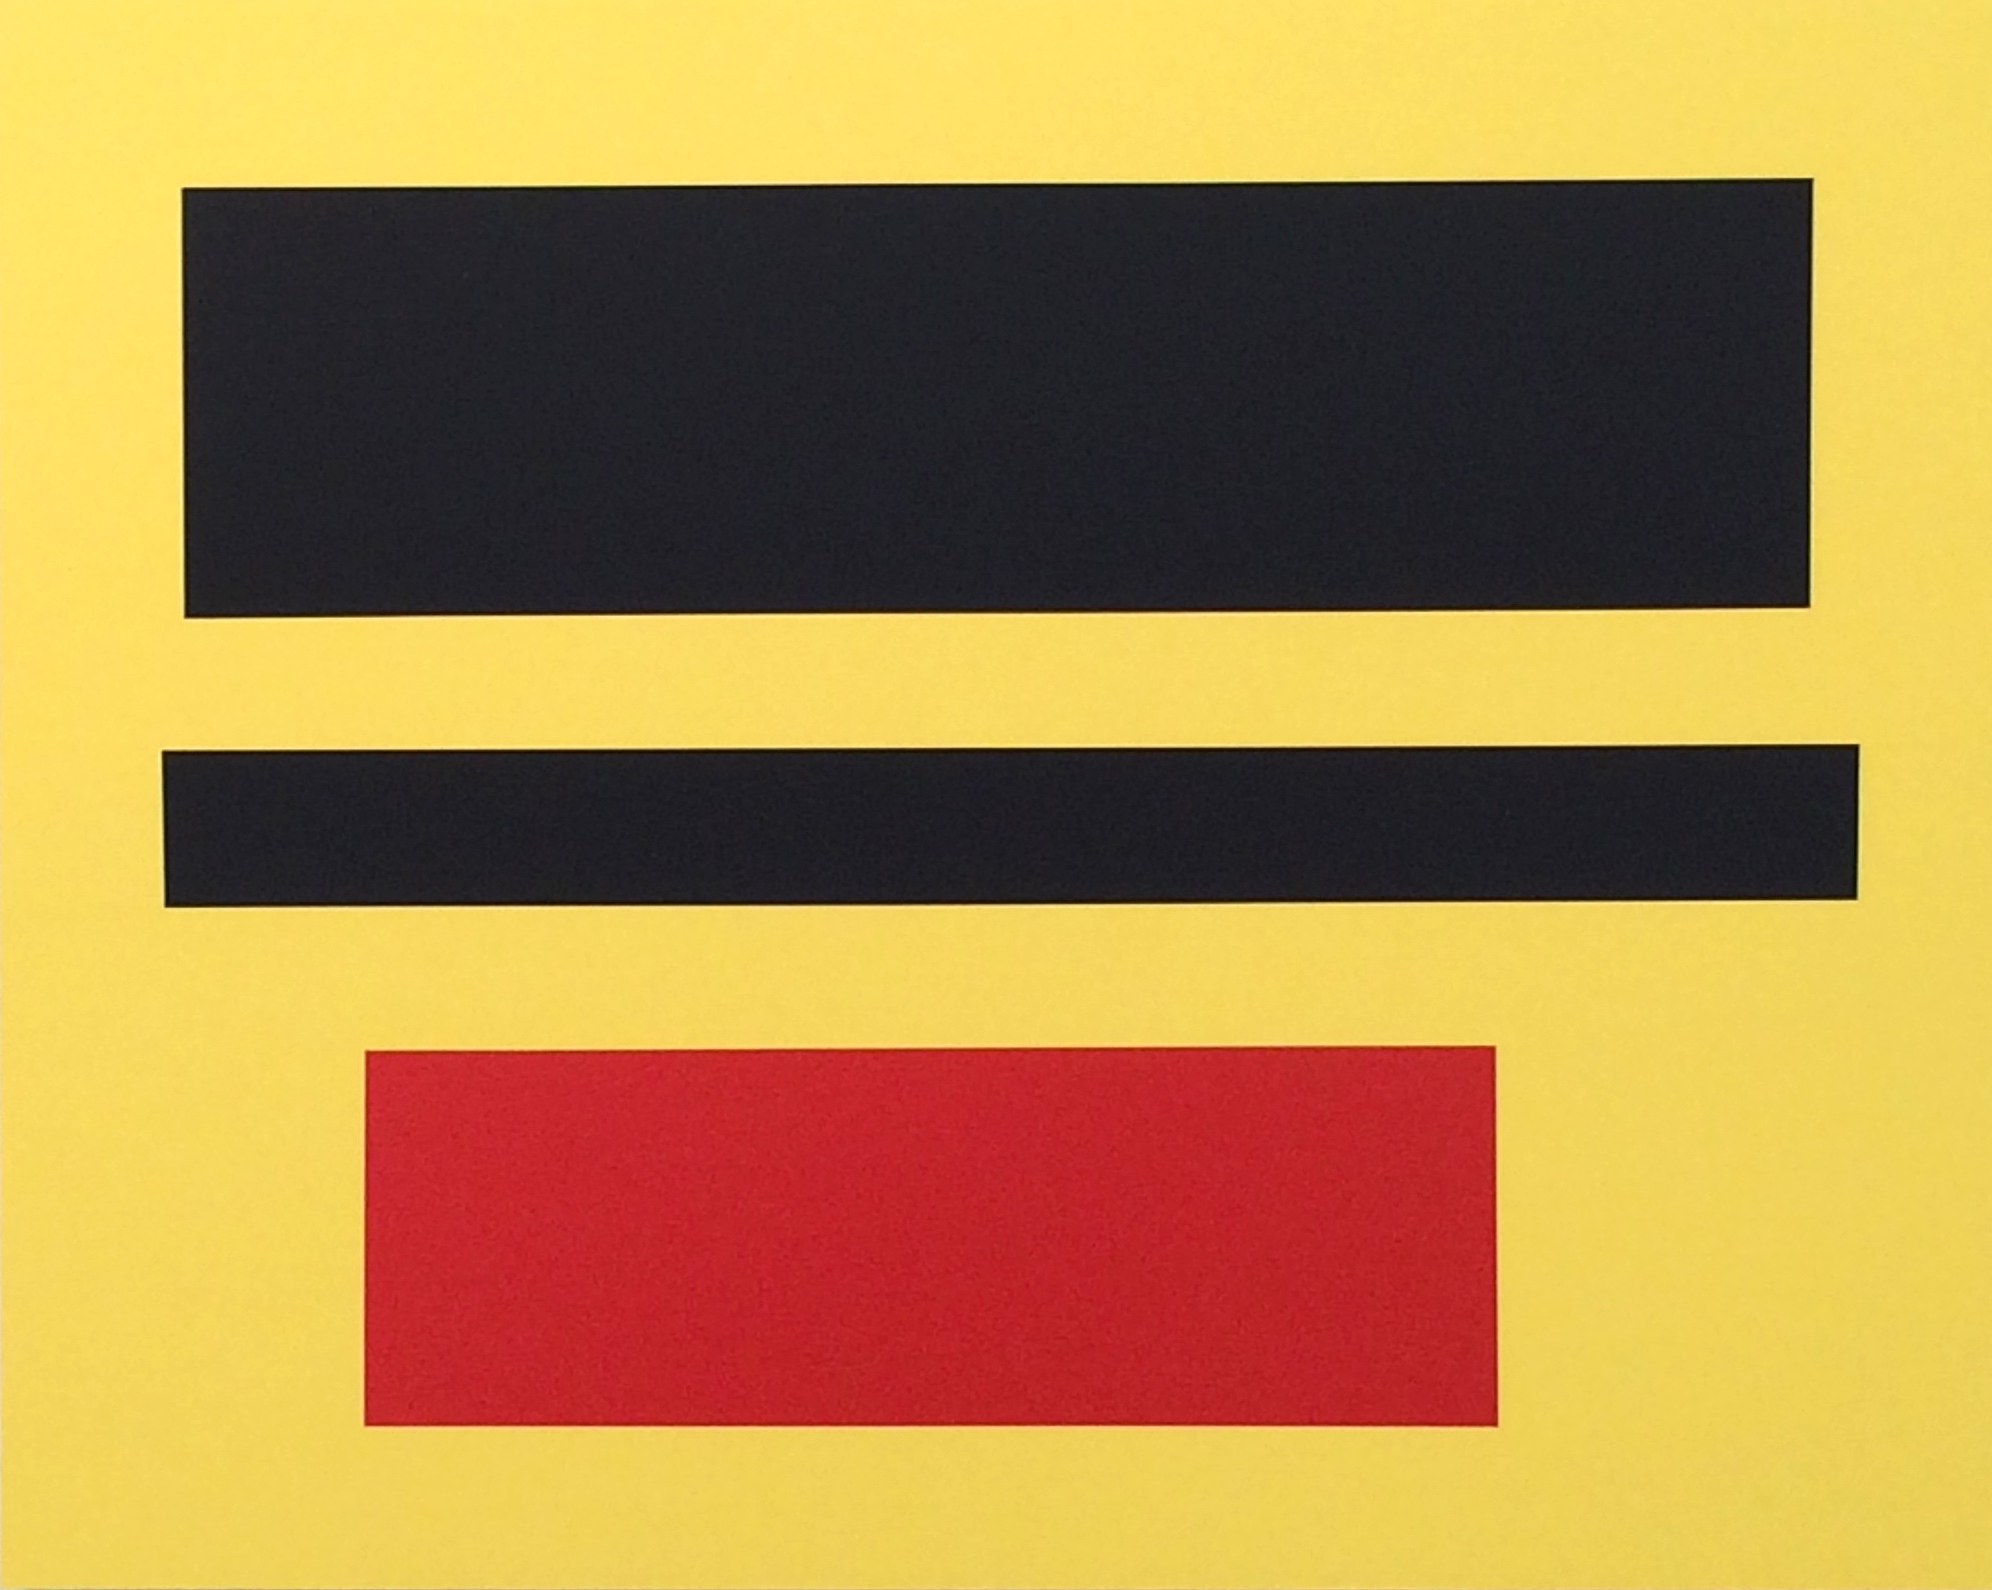 Decal (Red, Yellow, Black)